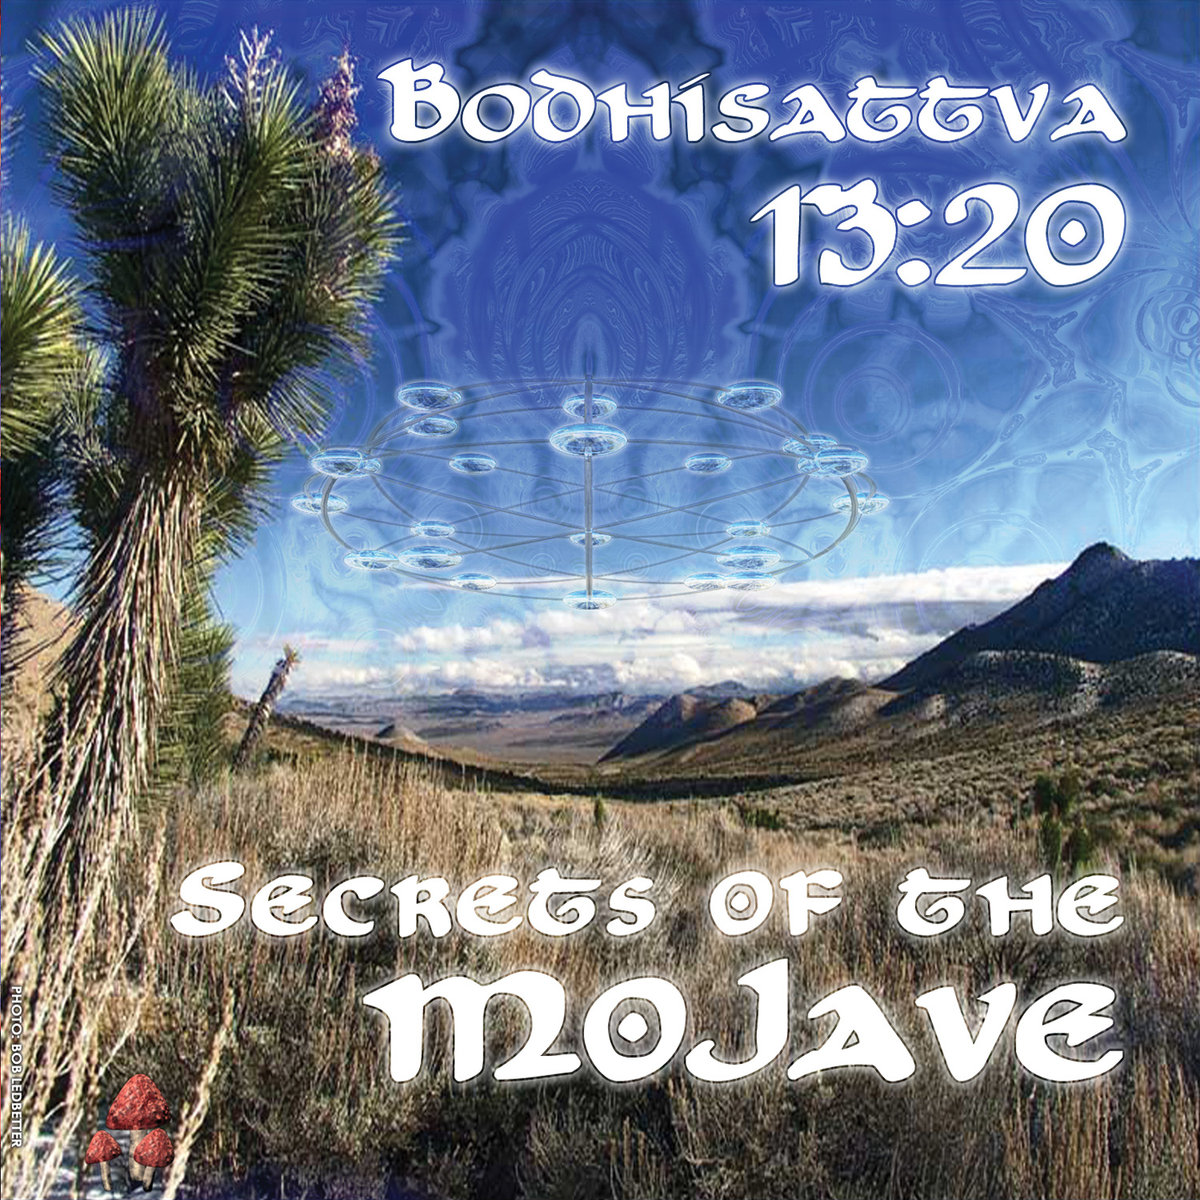 Bodhisattva 13:20 - Giggle Gargle @ 'Secrets of the Mojave' album (electronic, goa)